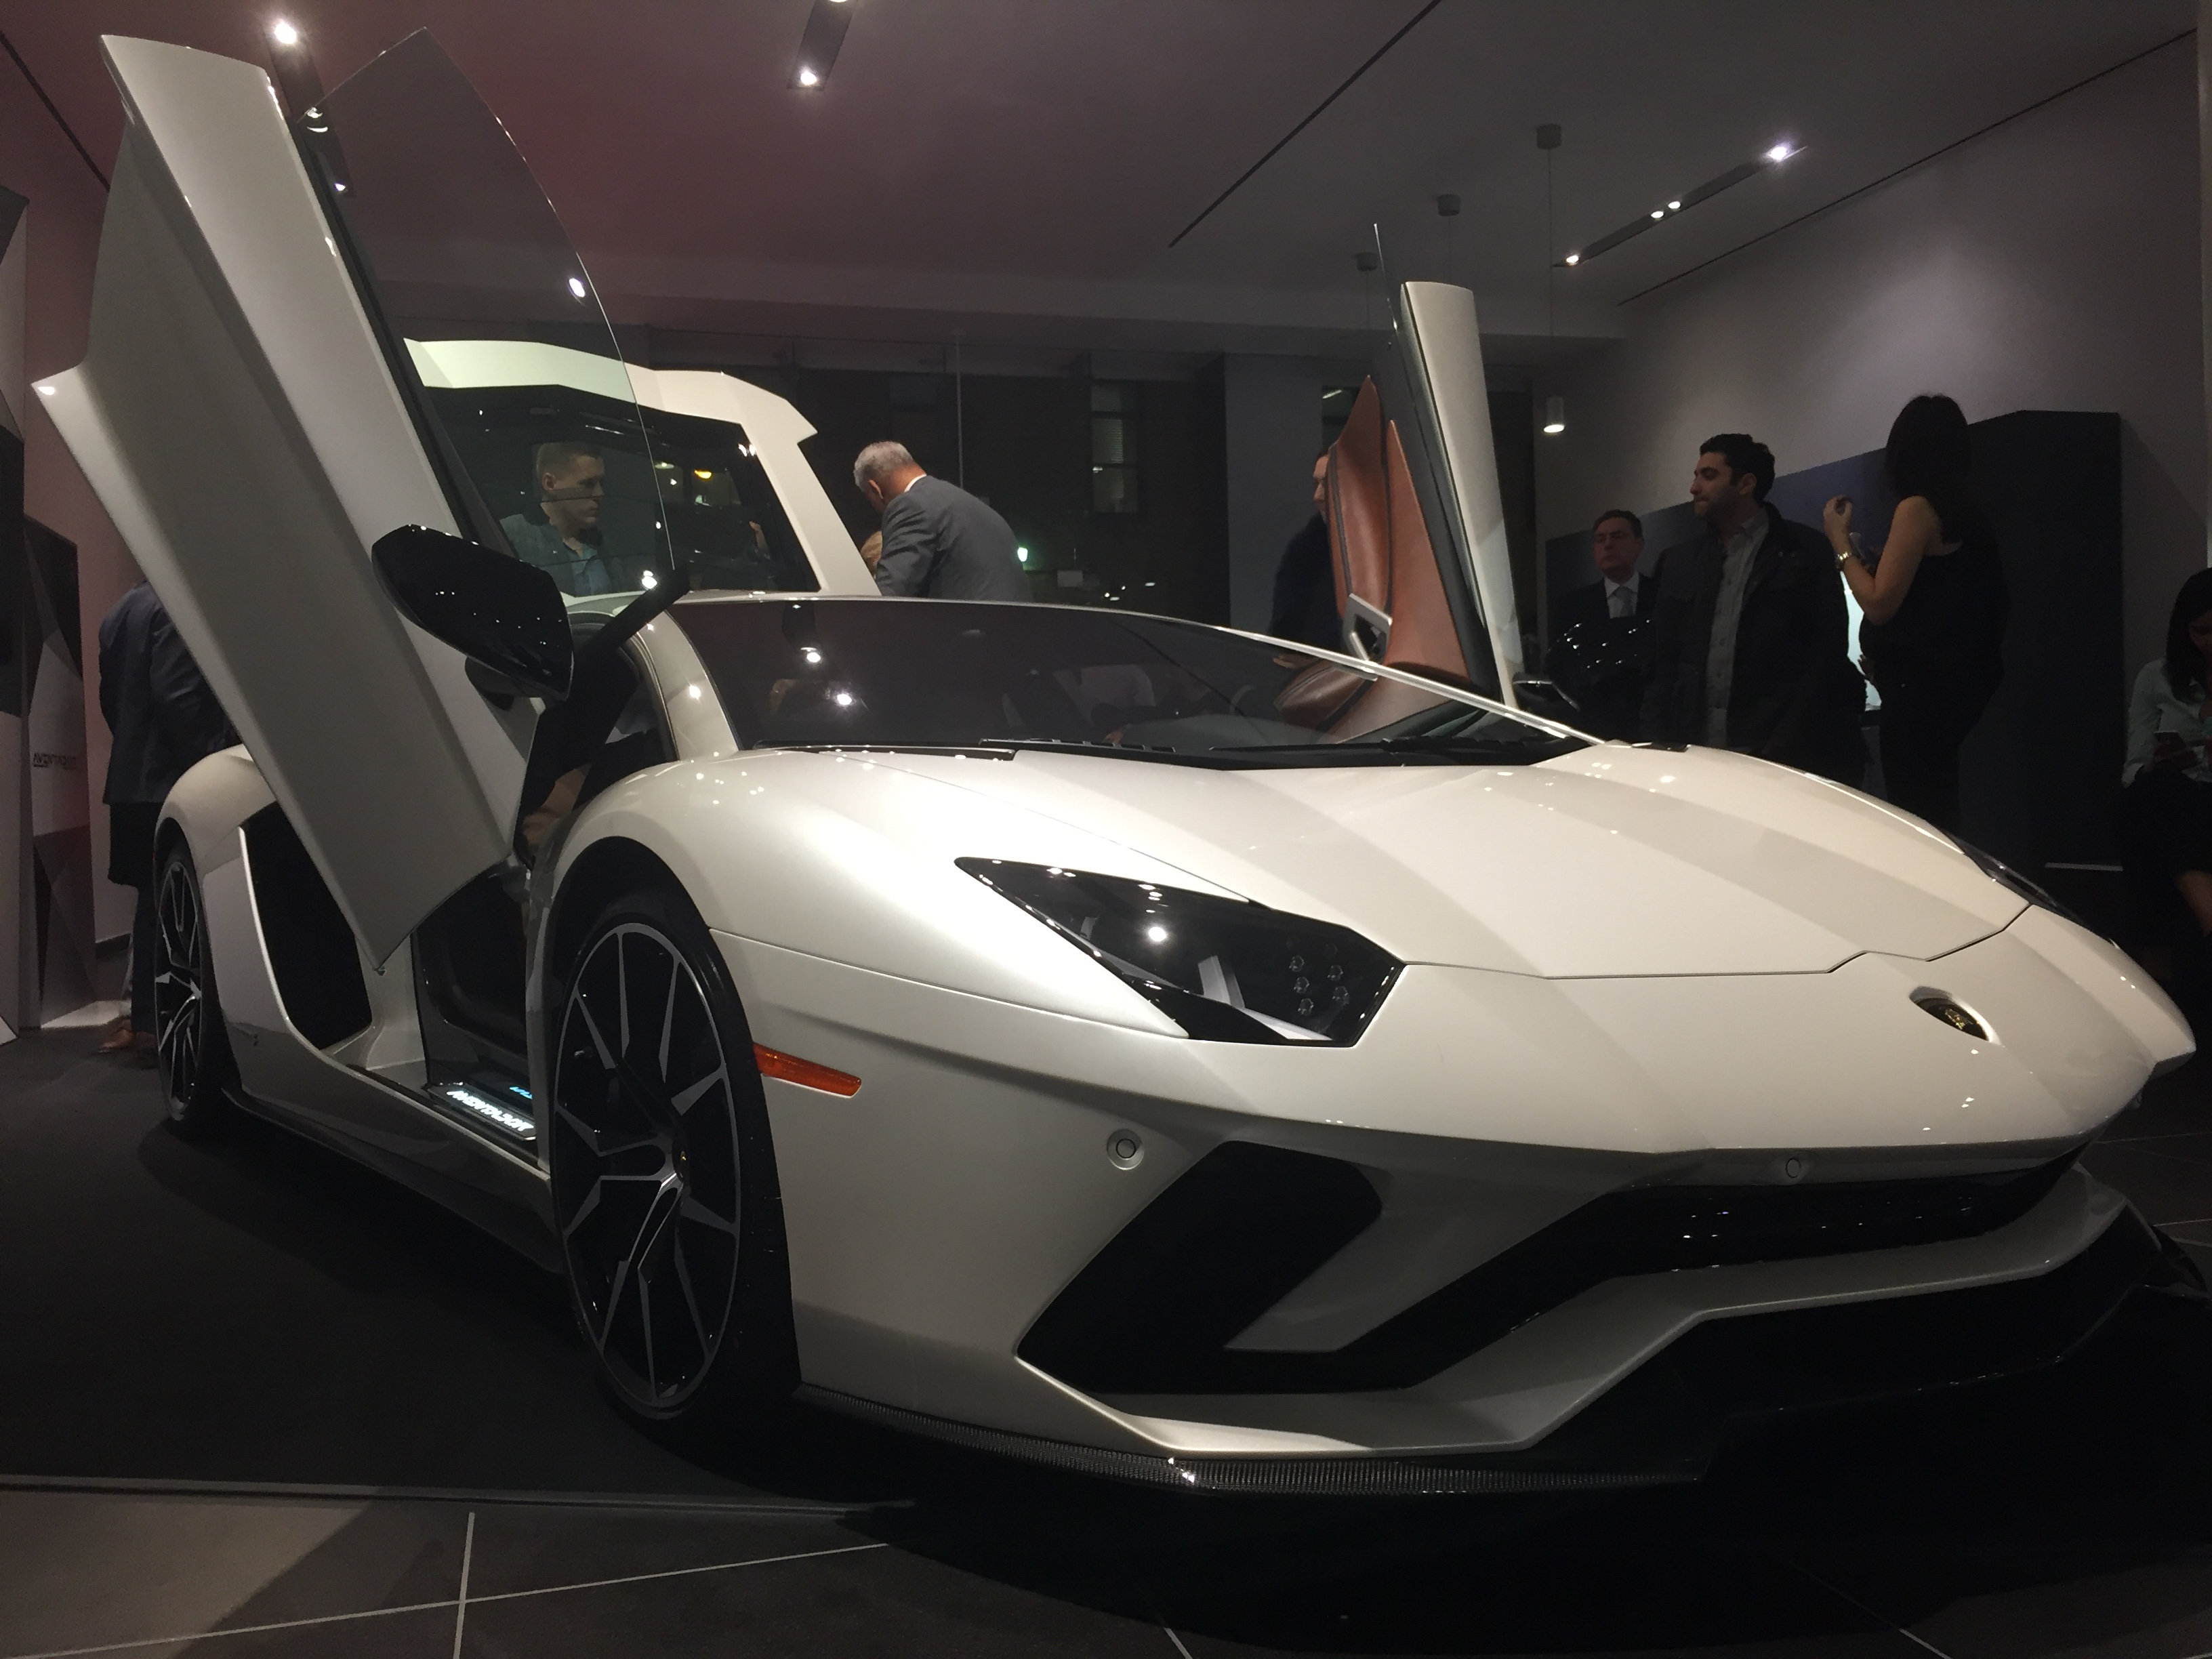 Watch The Mind Blowing New Lamborghini Aventador S Being Unveiled   Itu0027s A  $424,000 Supercar   TheStreet